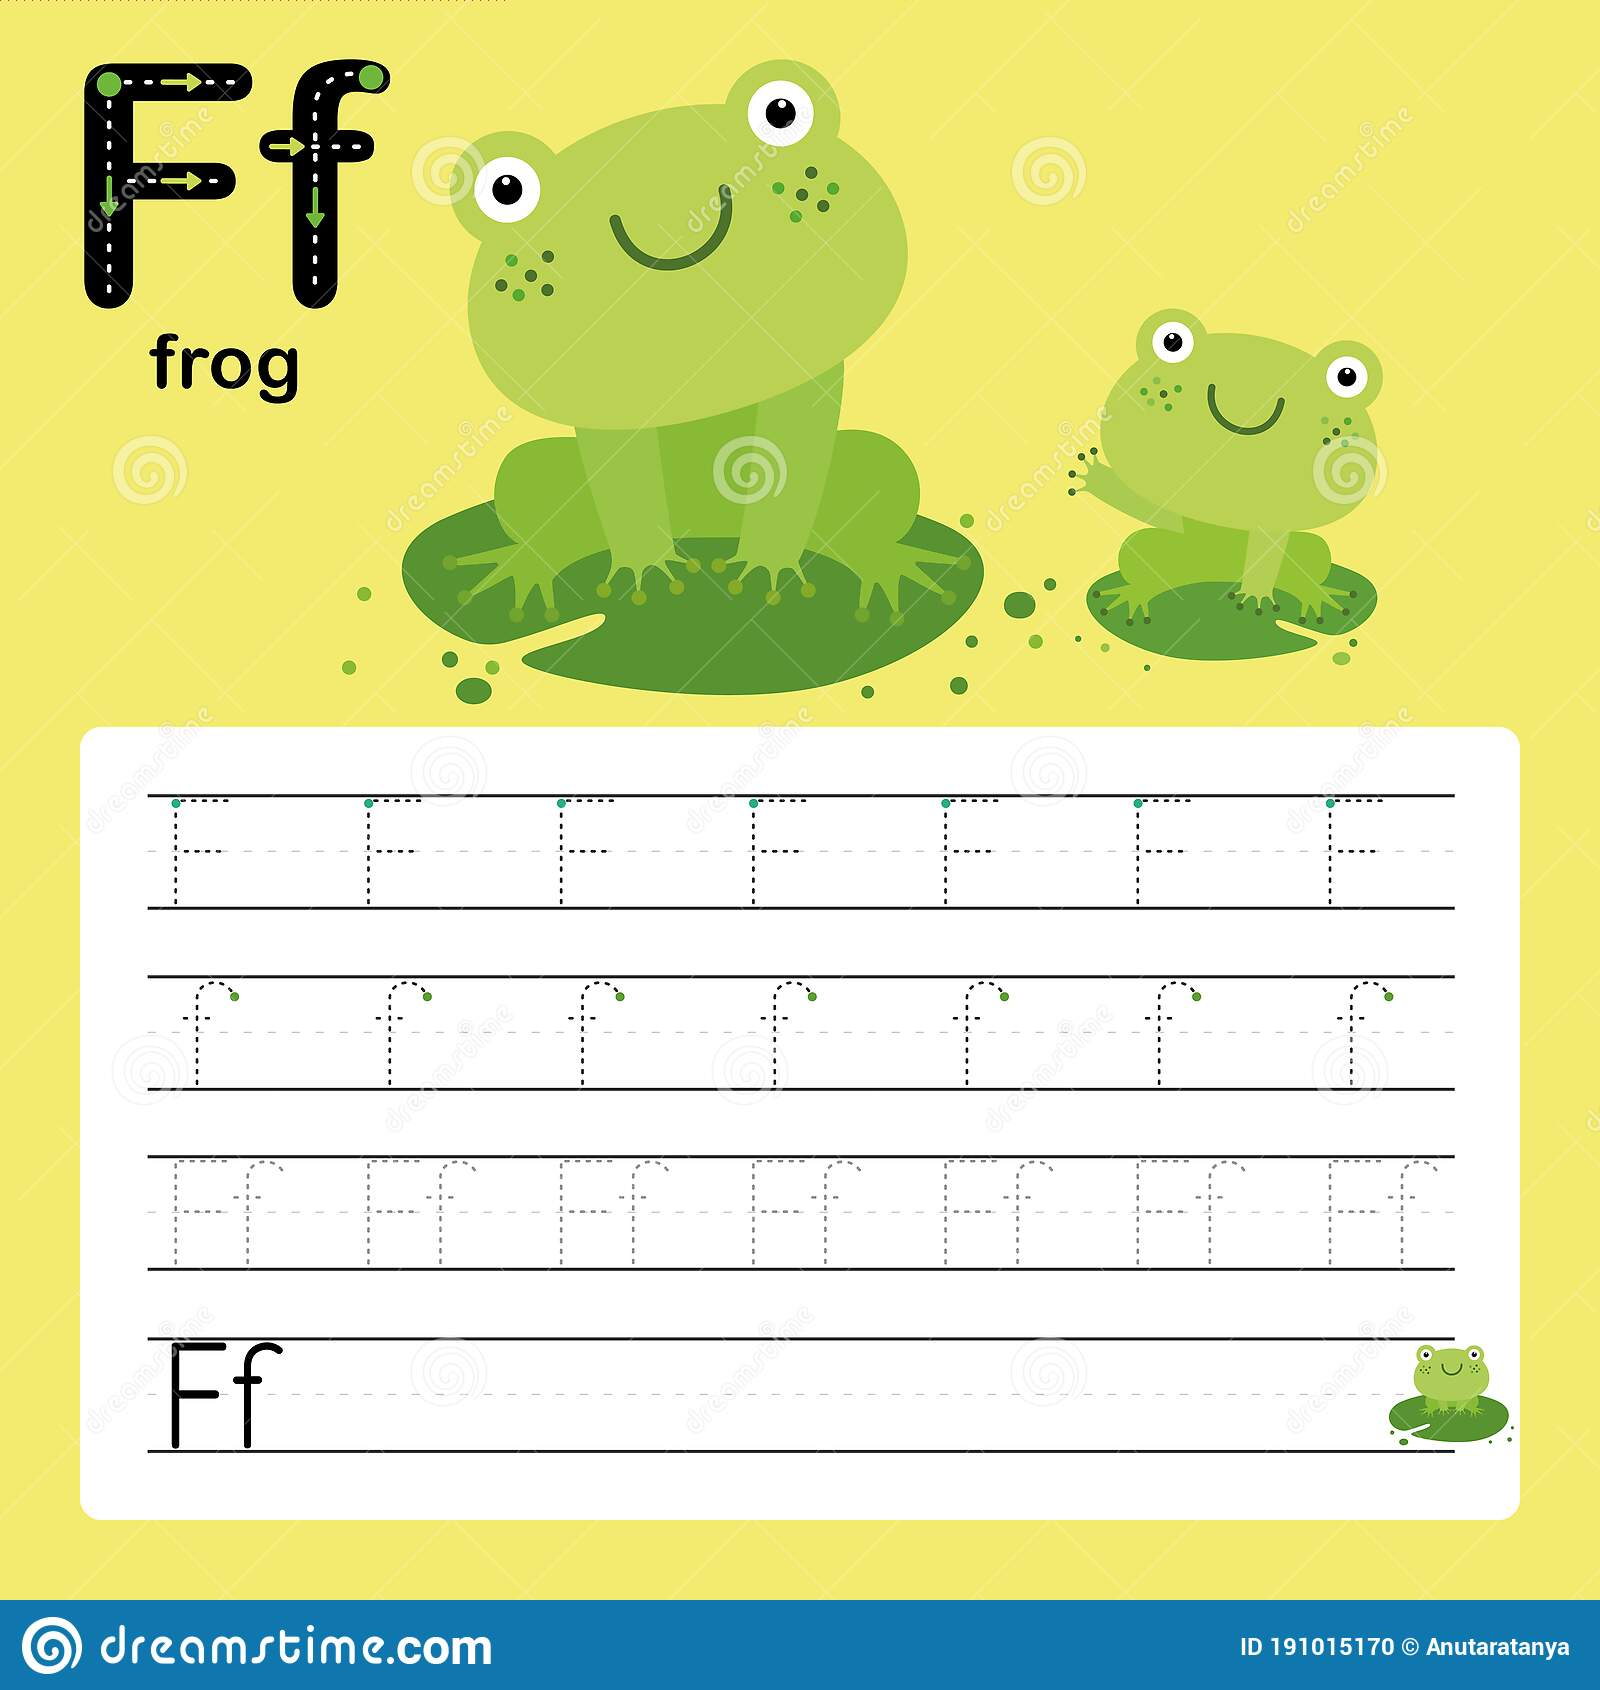 F Frog Alphabet Tracing Worksheet For Preschool And